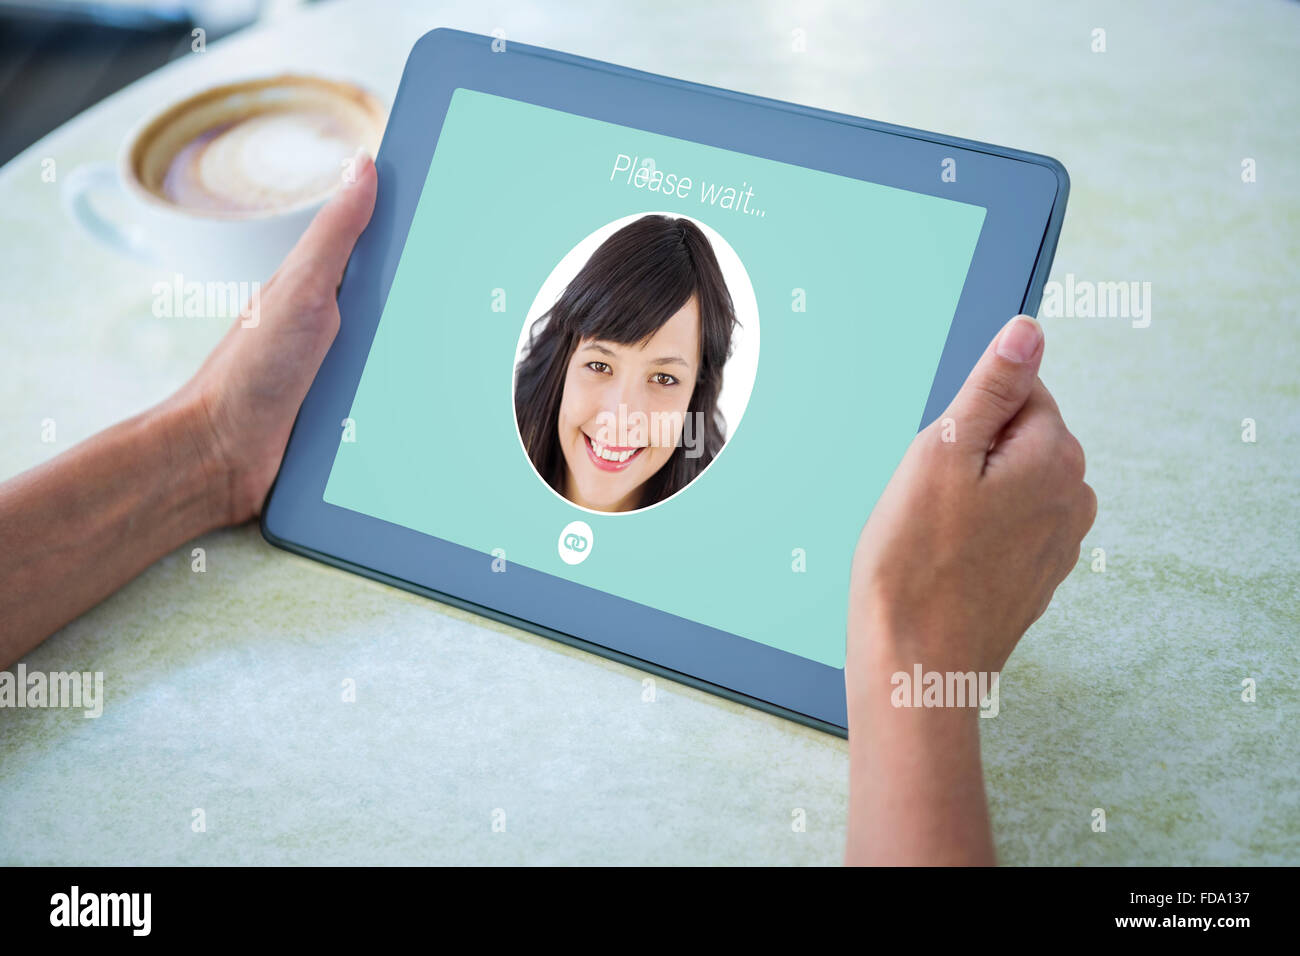 Composite image of identification on interface - Stock Image